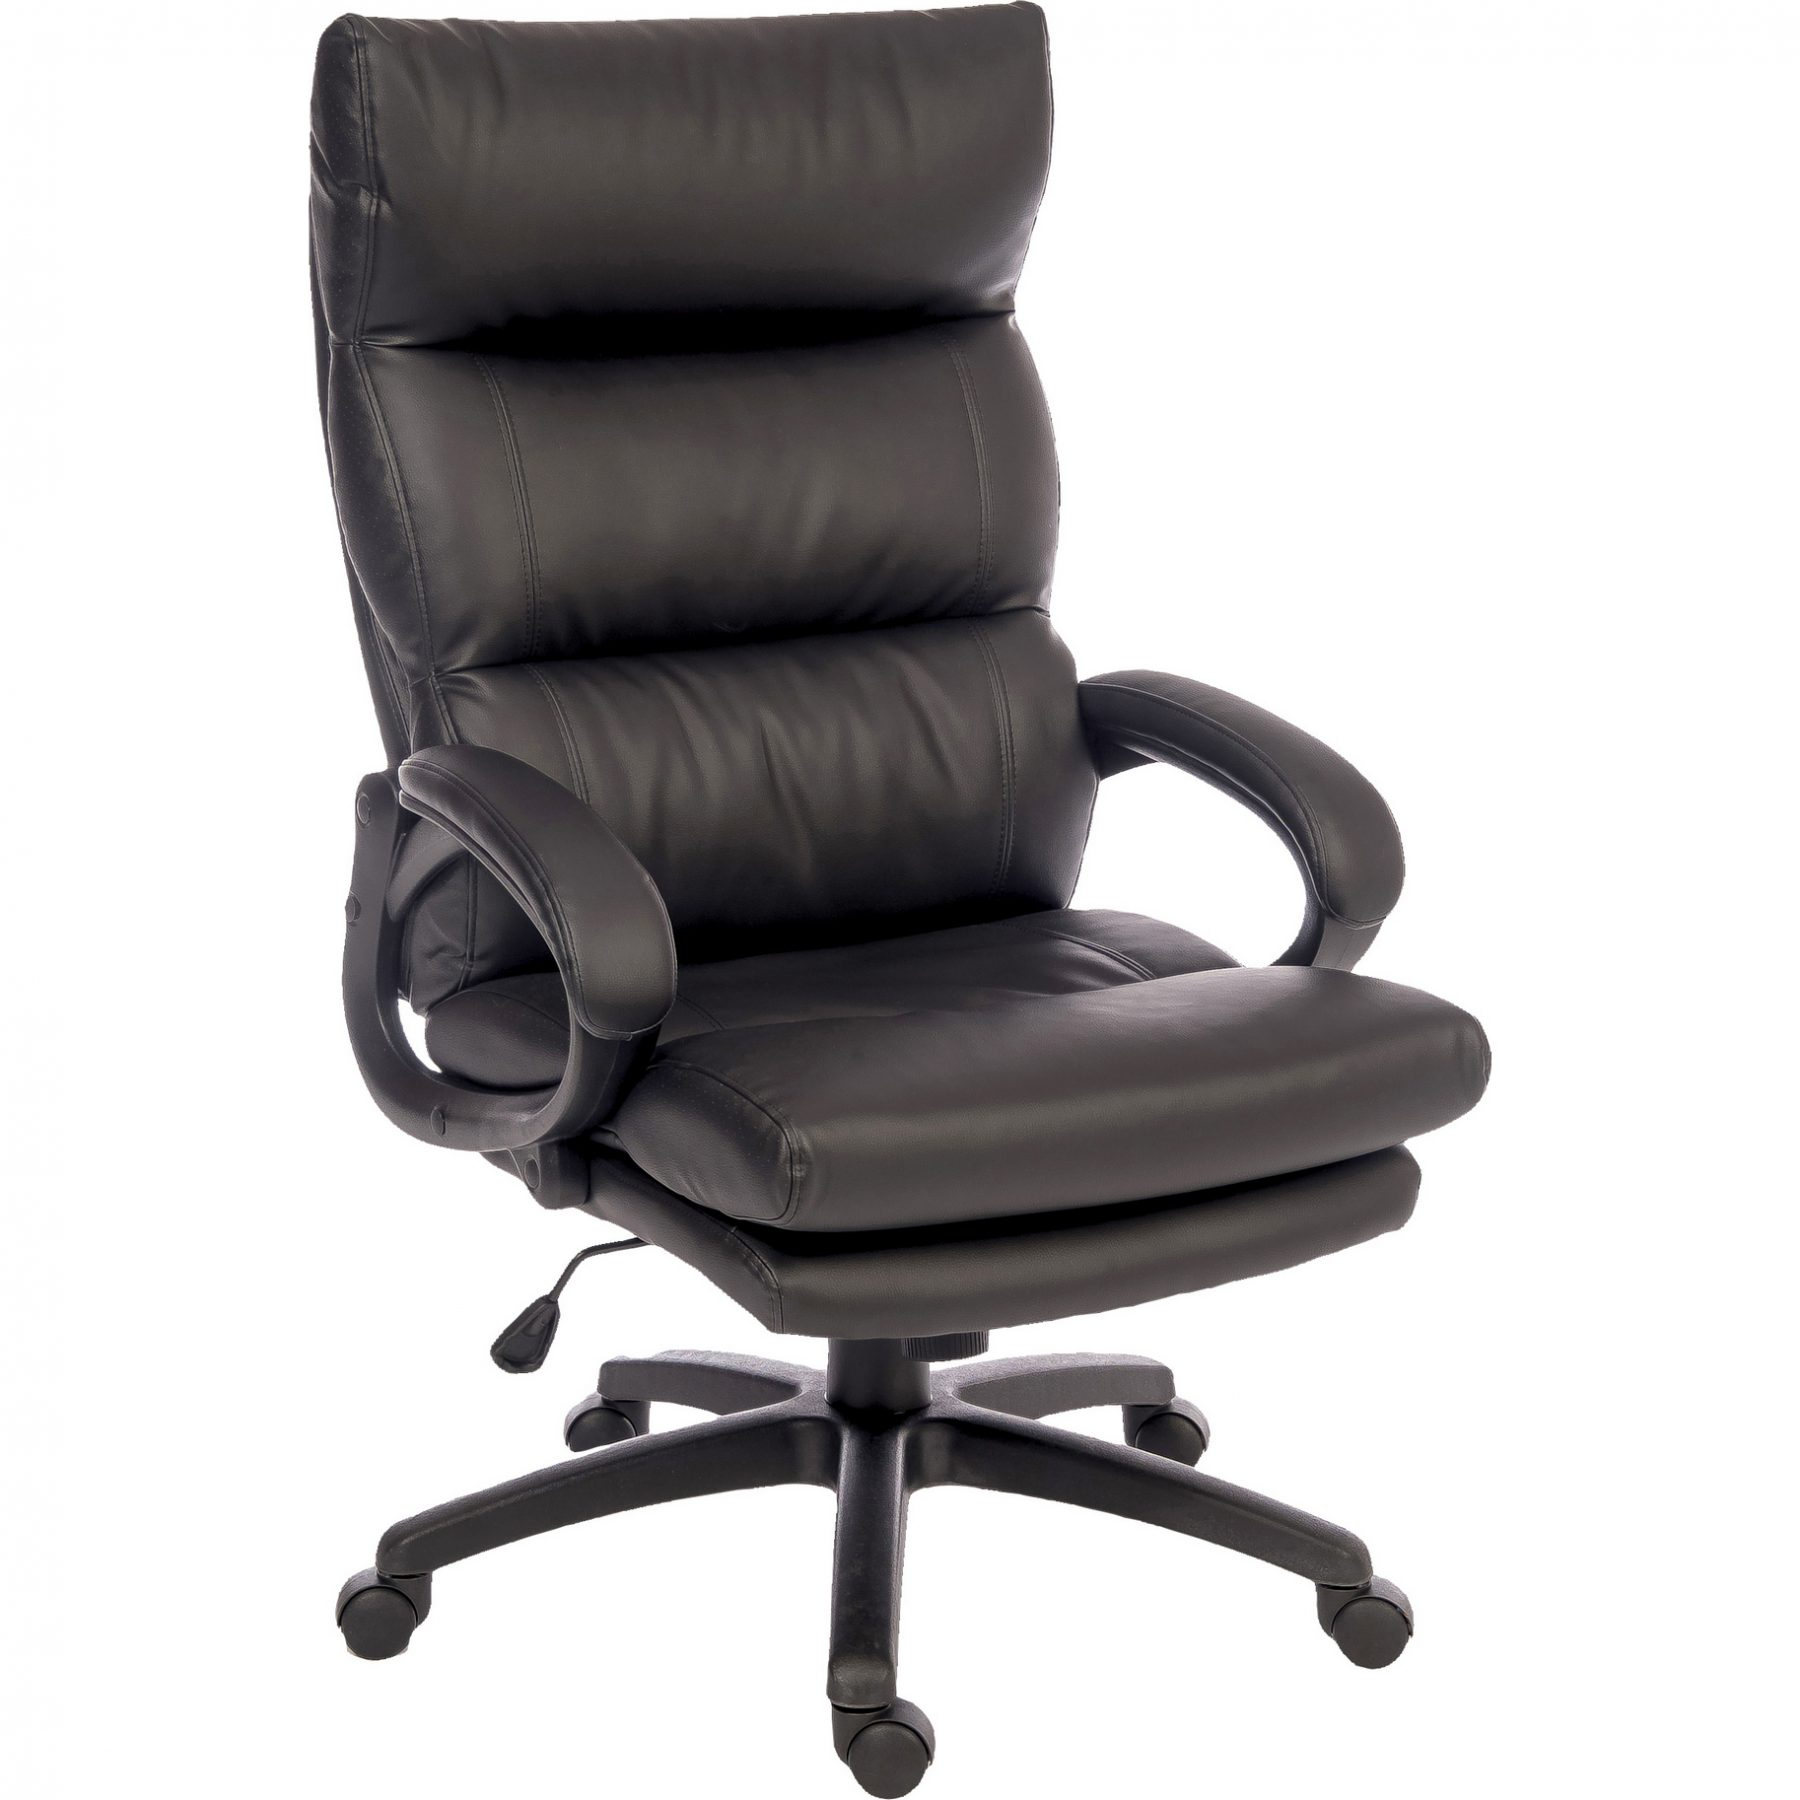 Lincoln Luxury Black Office Chair Faux Leather | Home ...